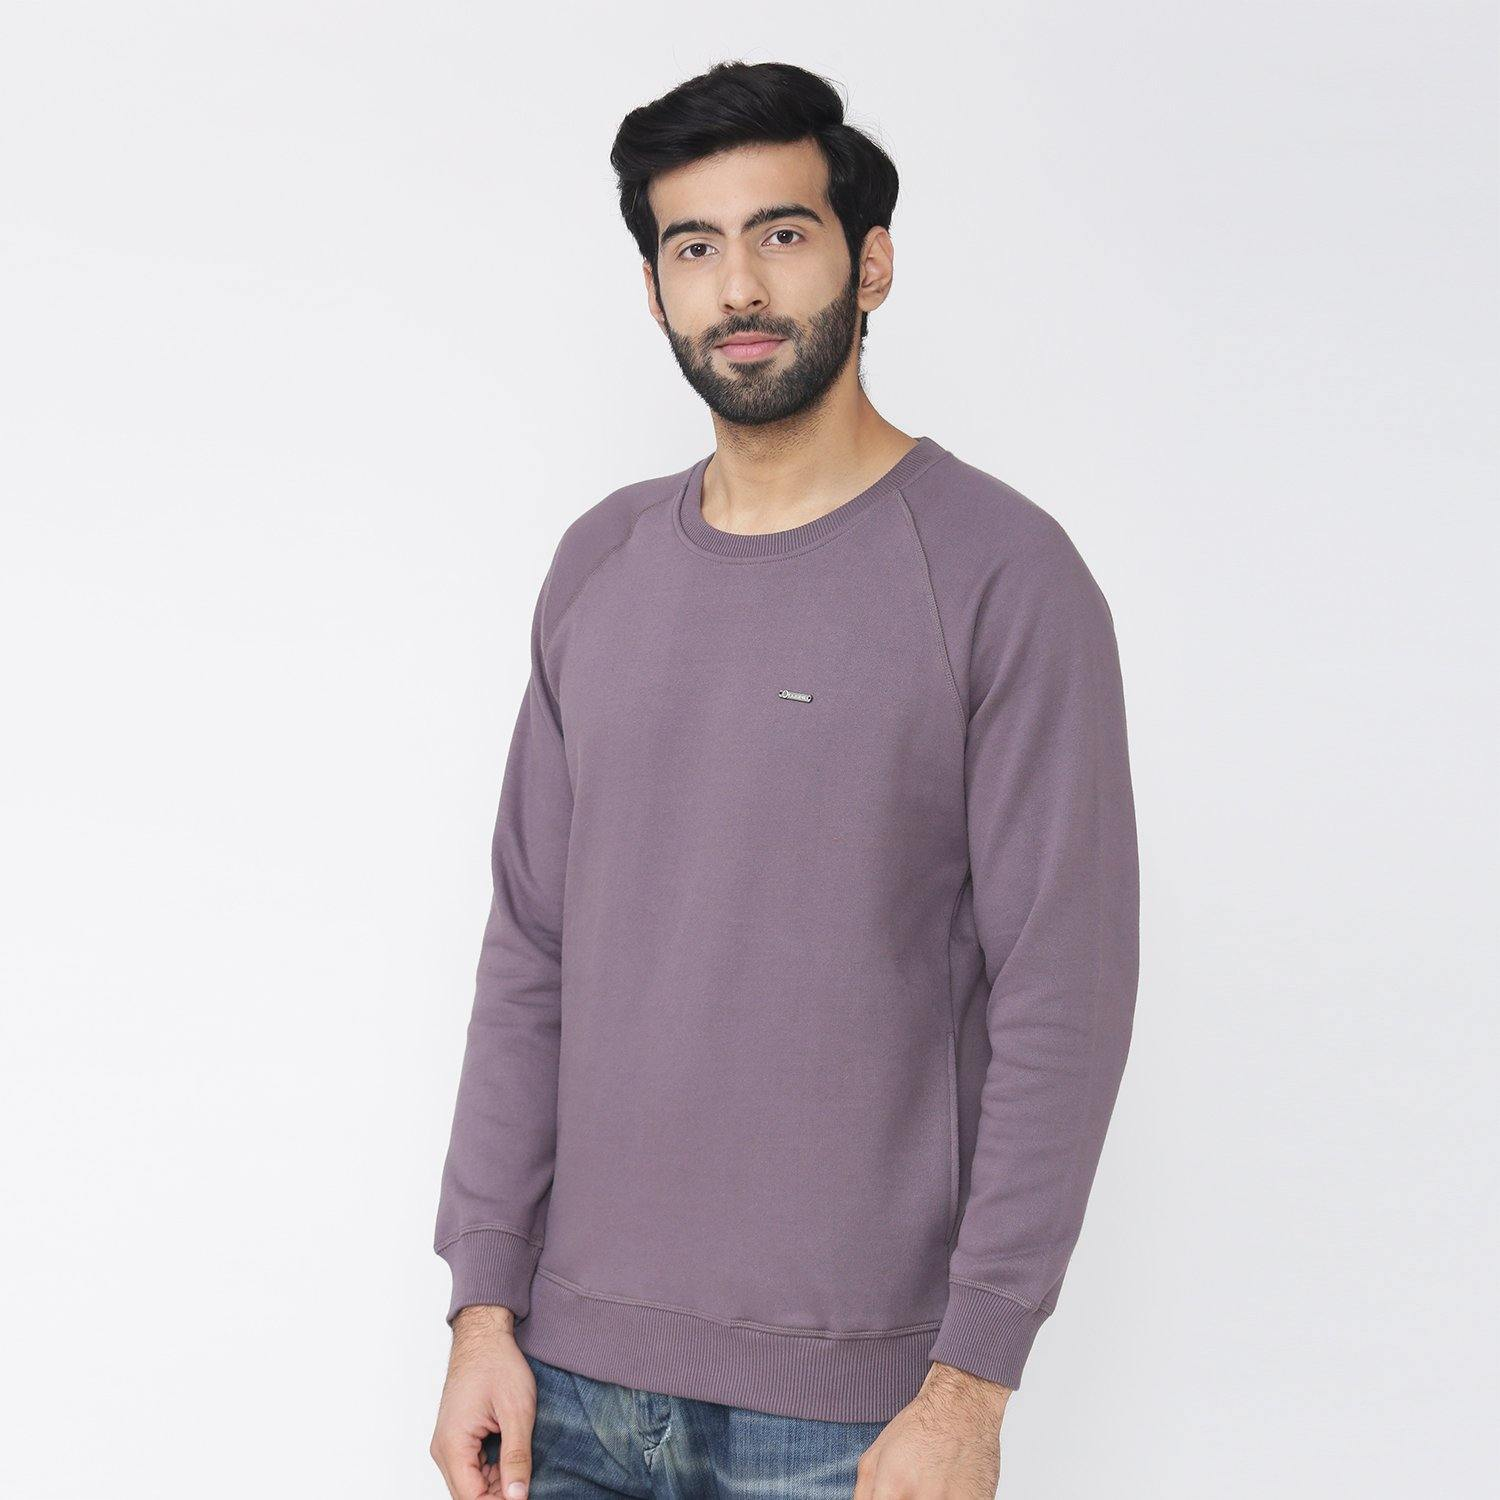 Men's Plain Winter Wear Sweatshirt - Rabbit